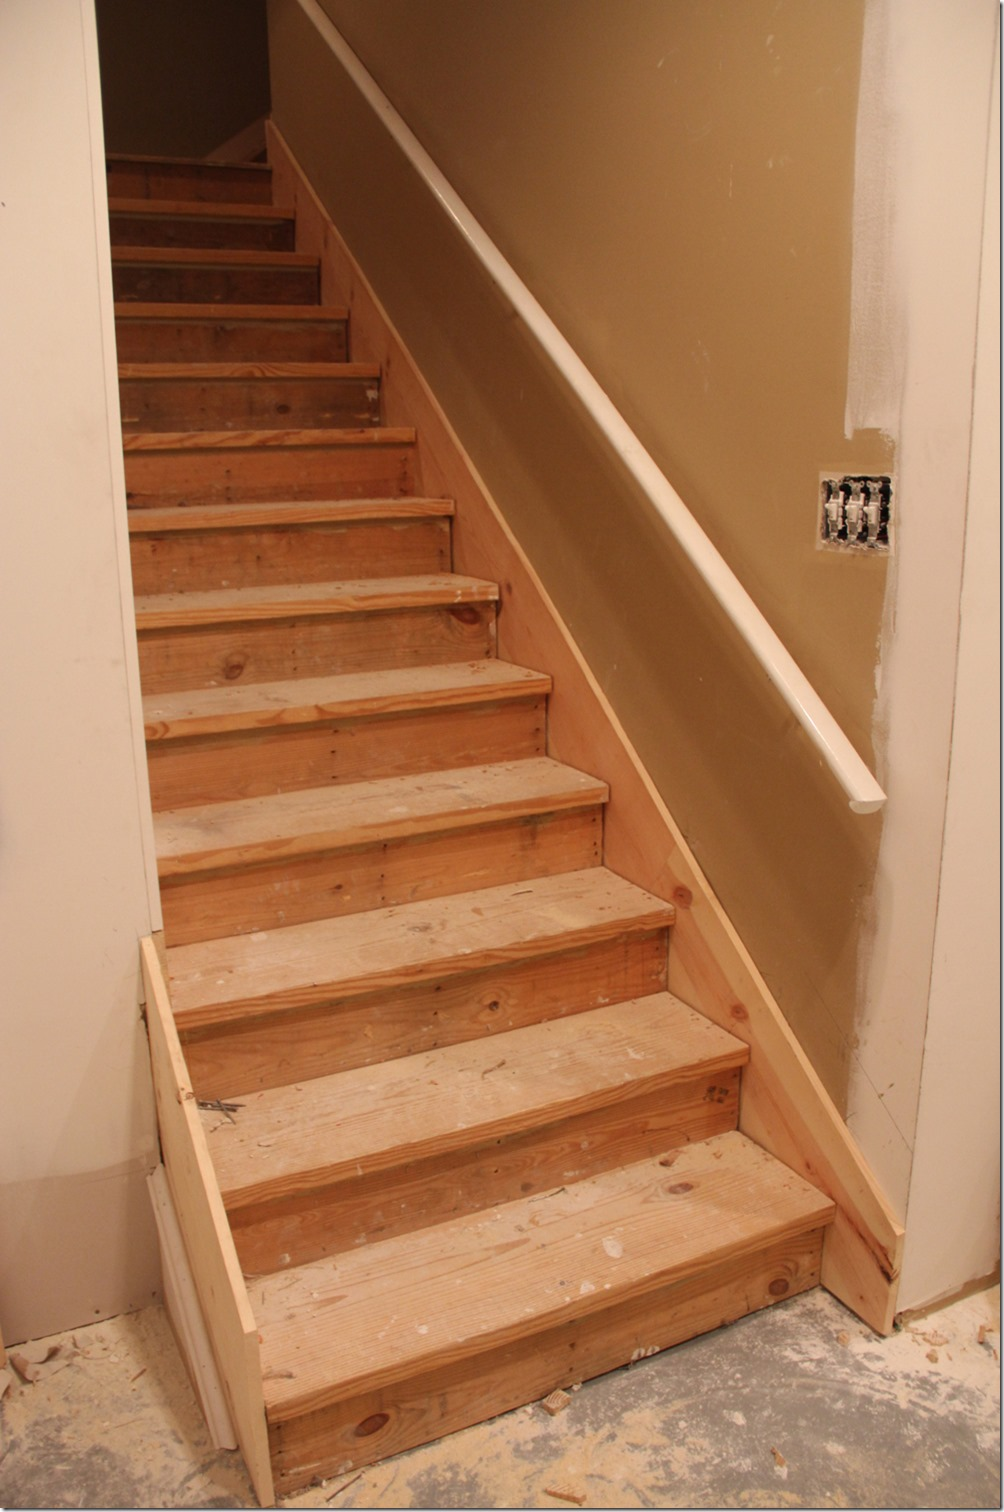 Wood Stairs Pose A Risk In Basement Fires What To Do